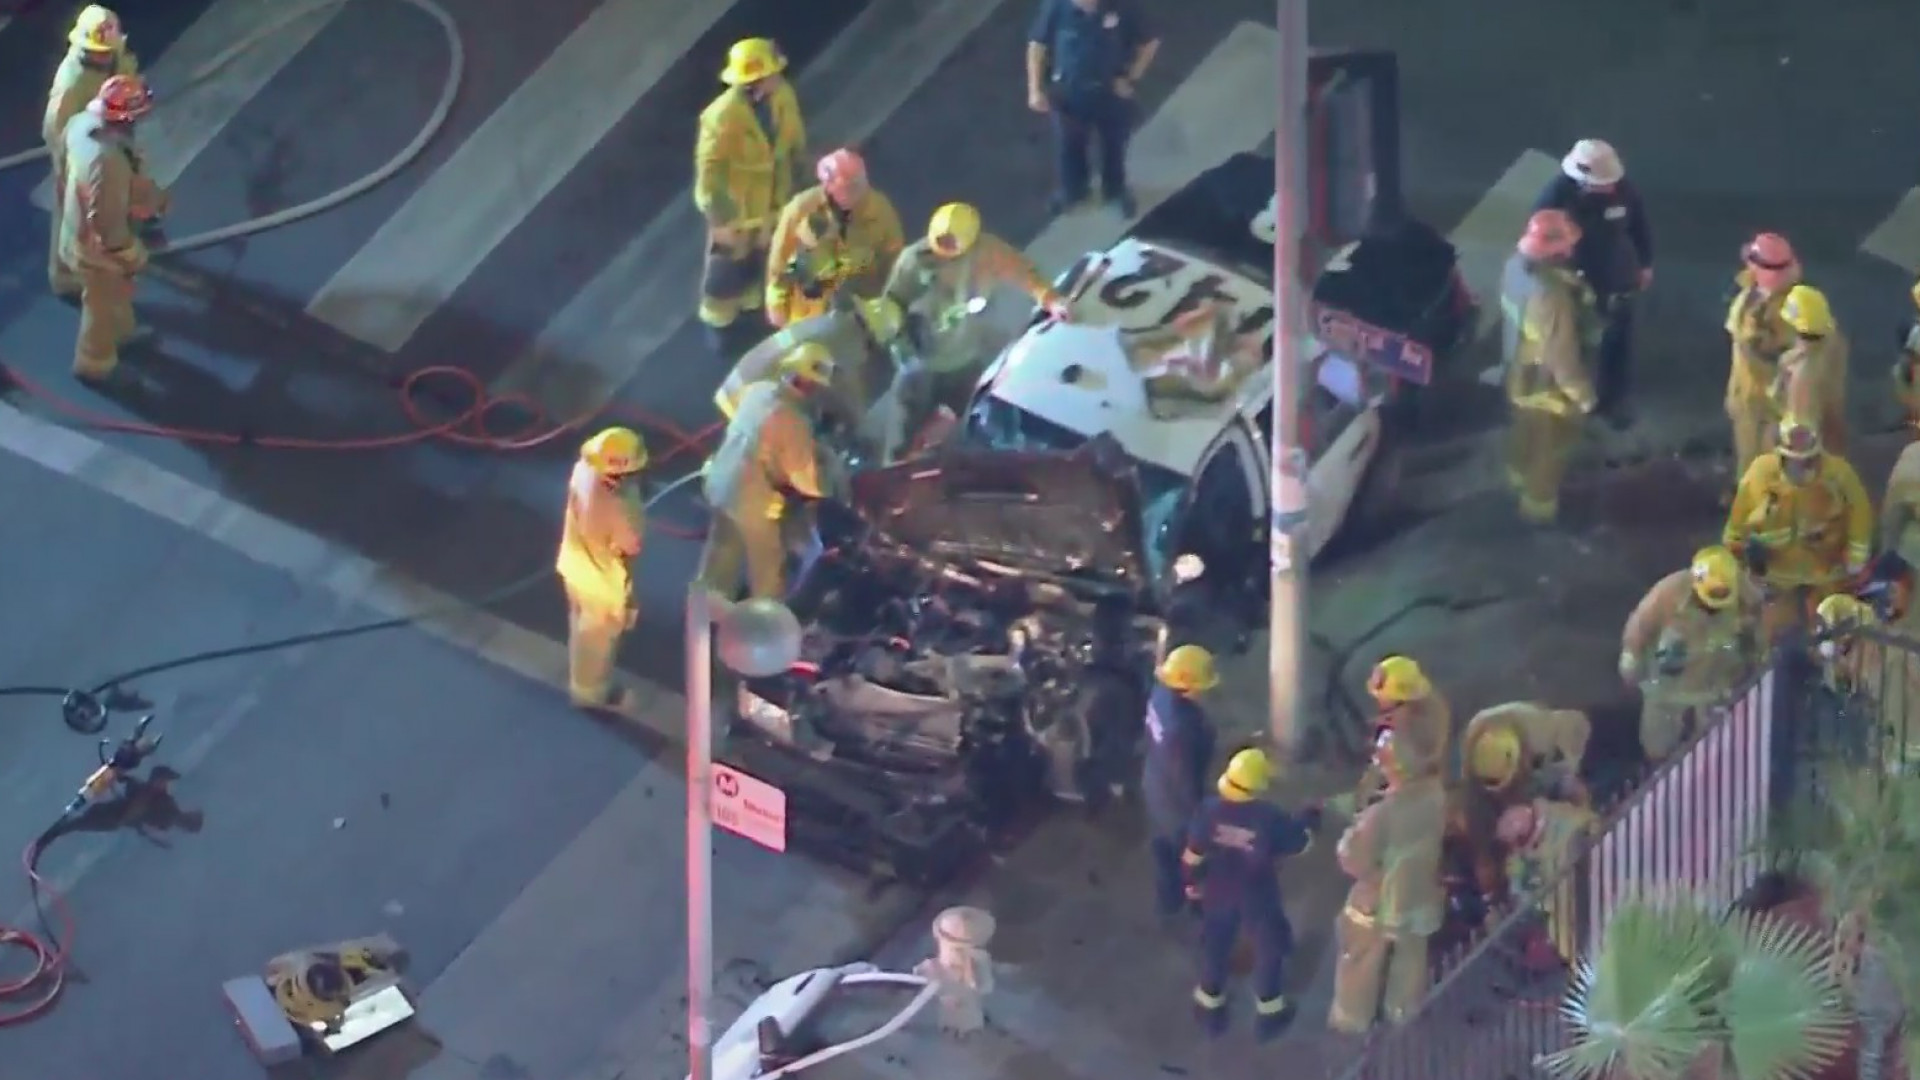 First responders work at the scene of a South Los Angeles crash involved a Los Angeles police car carrying two officers on Oct. 21, 2020. (KTLA)